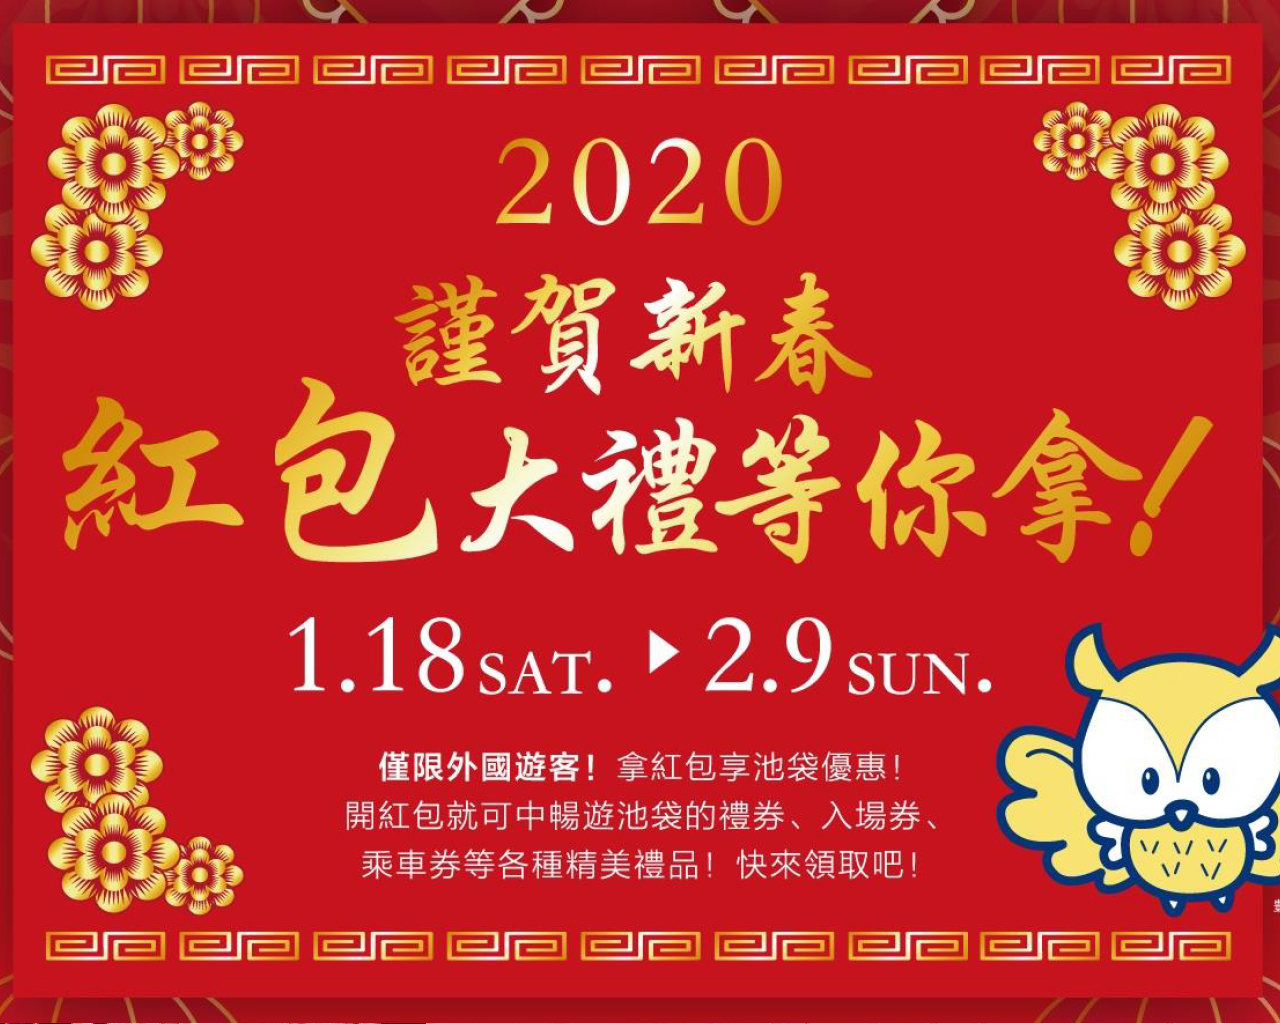 Cerebrate to the Chinese New Year's Festival! The red envelope has a chance!